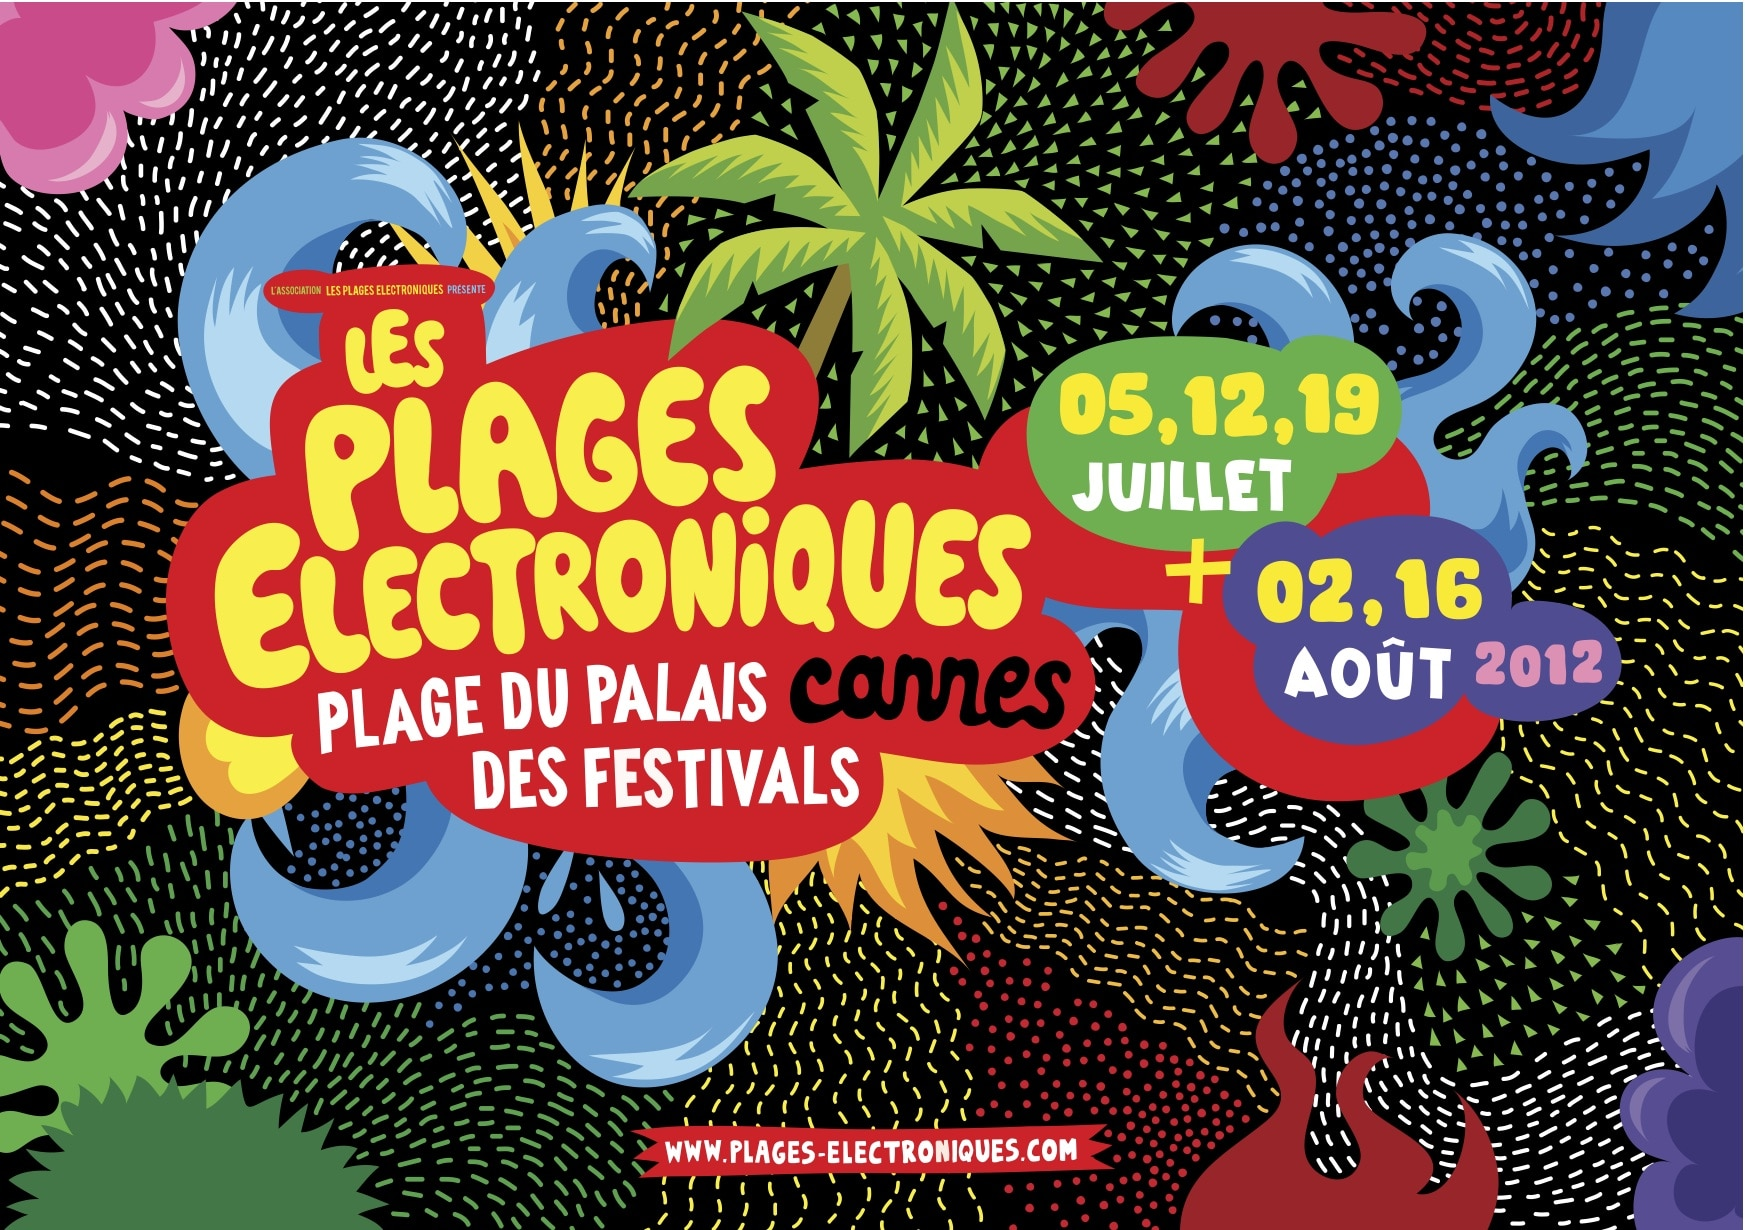 les plages electroniques cannes les plages electroniques festival electro france festival electro concours concert les plages electroniques  Concours, les plages electroniques Visuel plages electroniques 2012